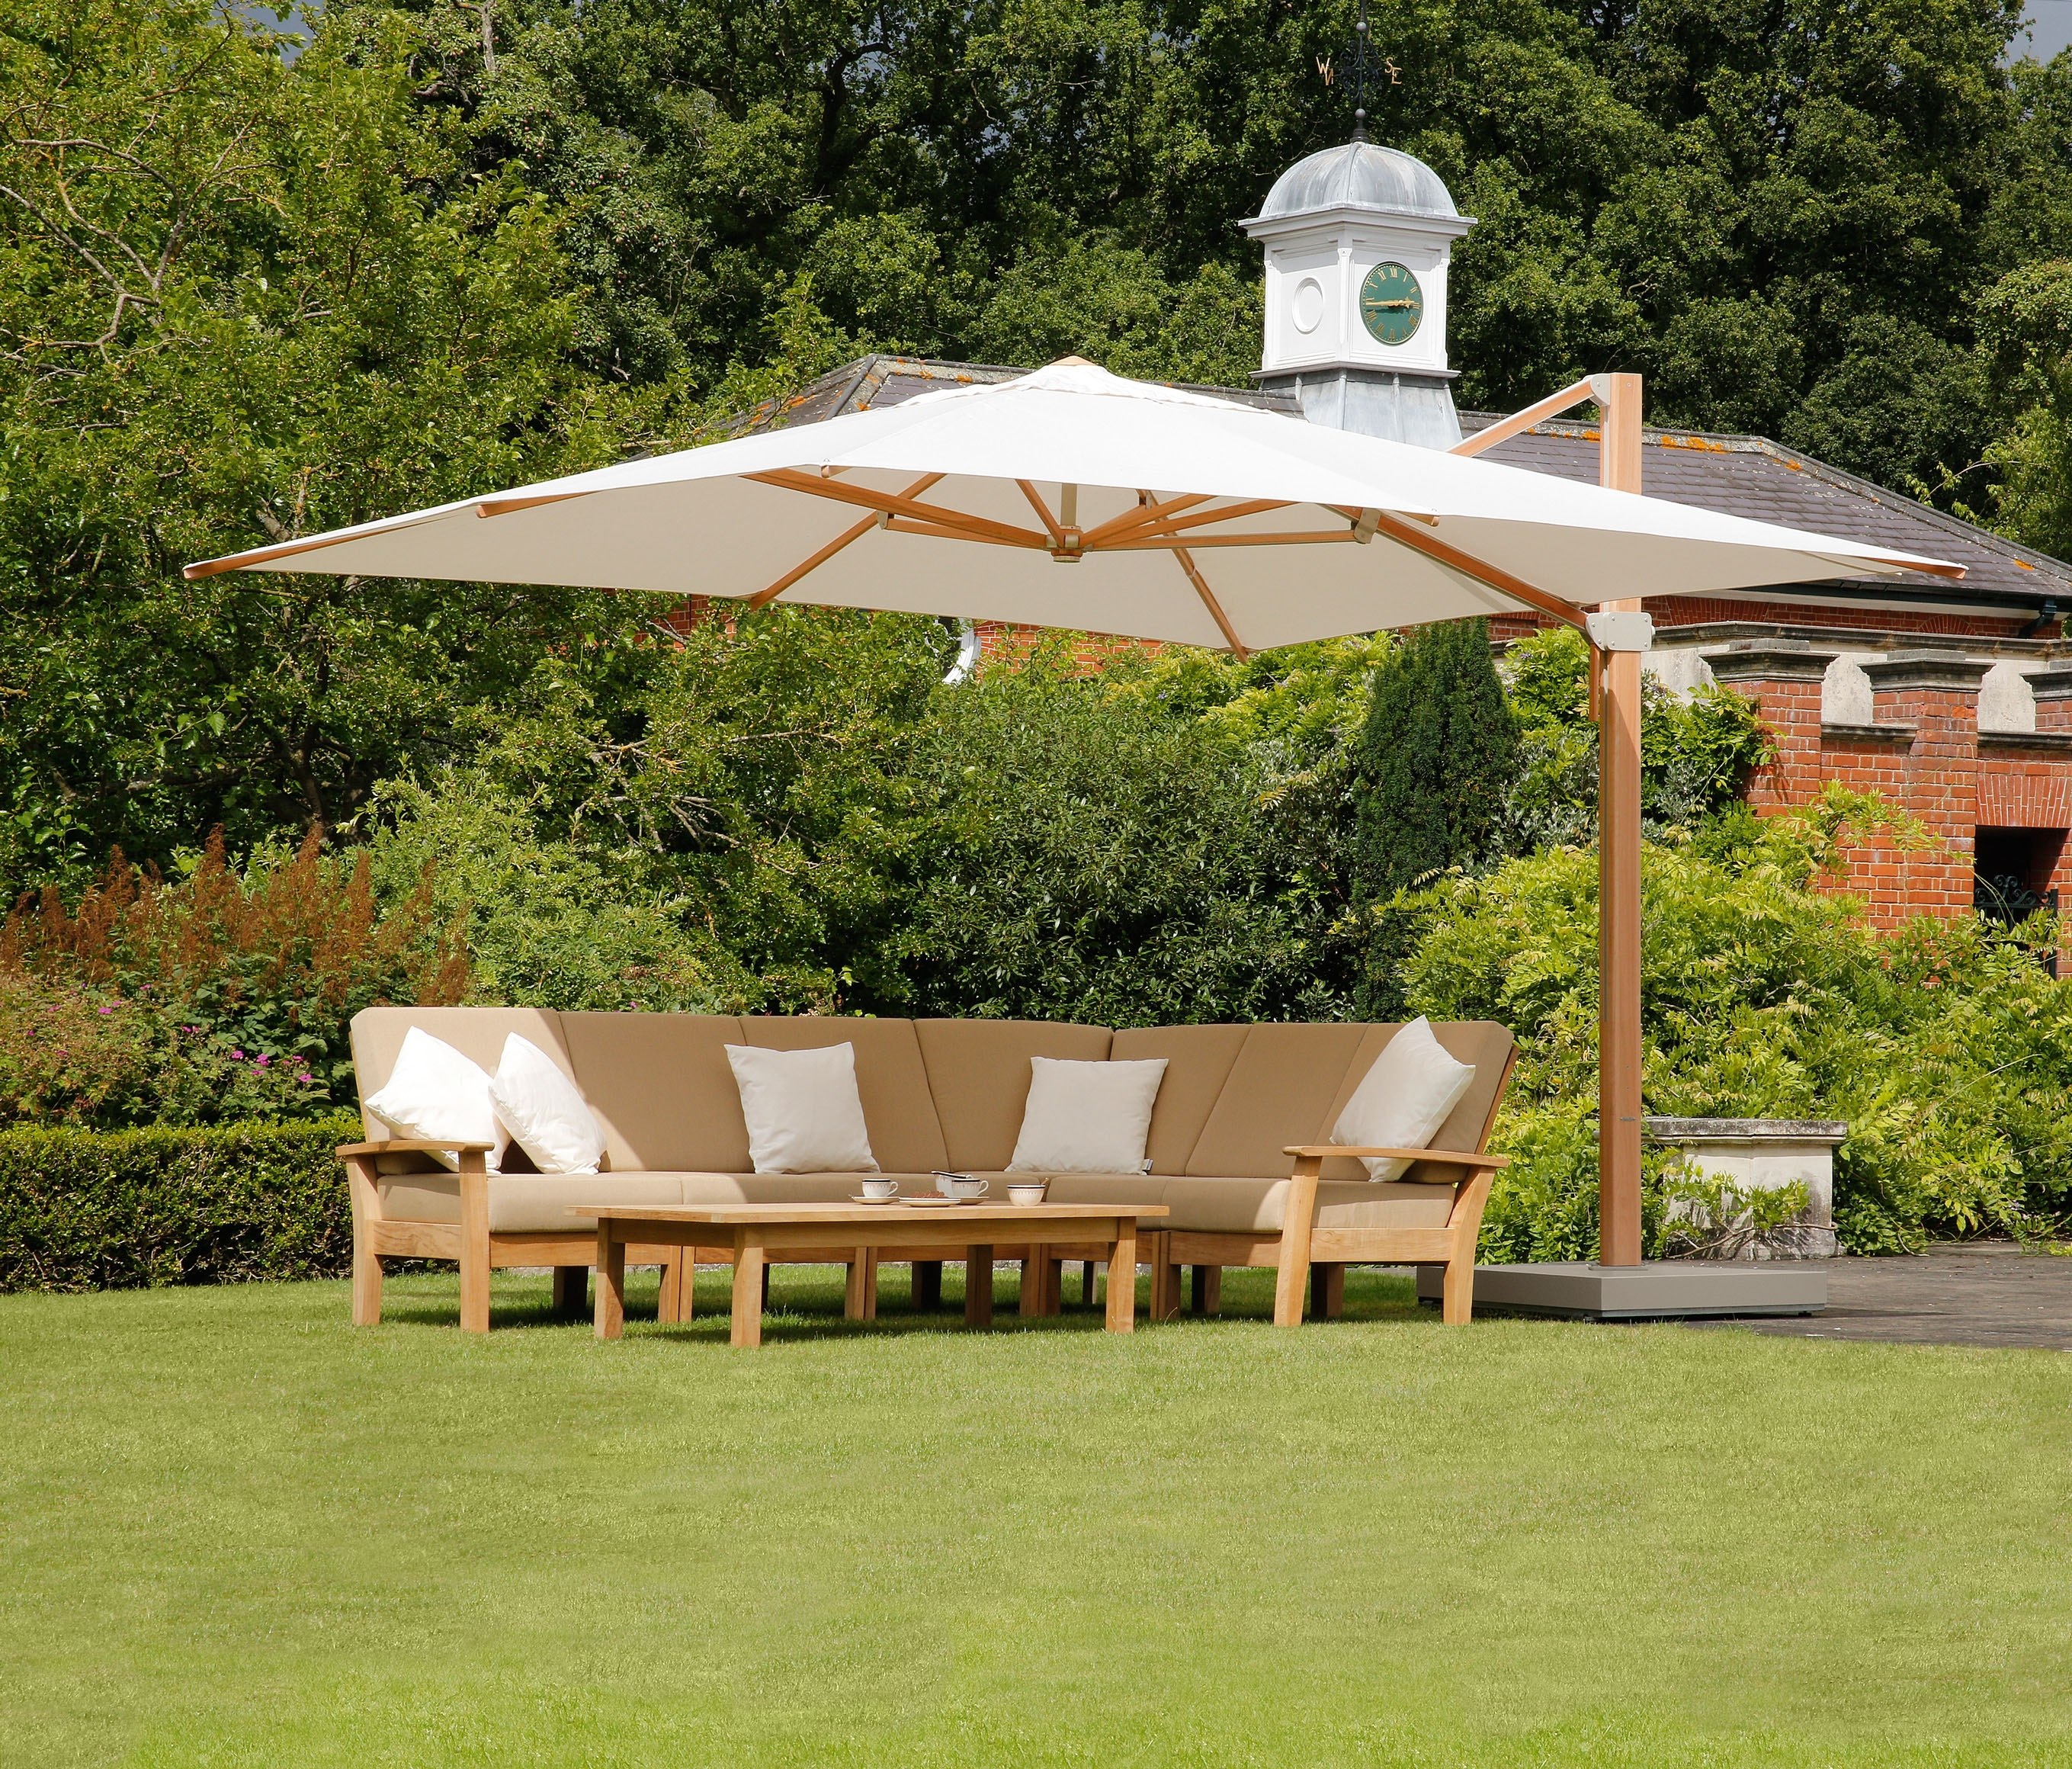 Barlowtyrie Hotel Best Commercial Grade Outdoor Furniture